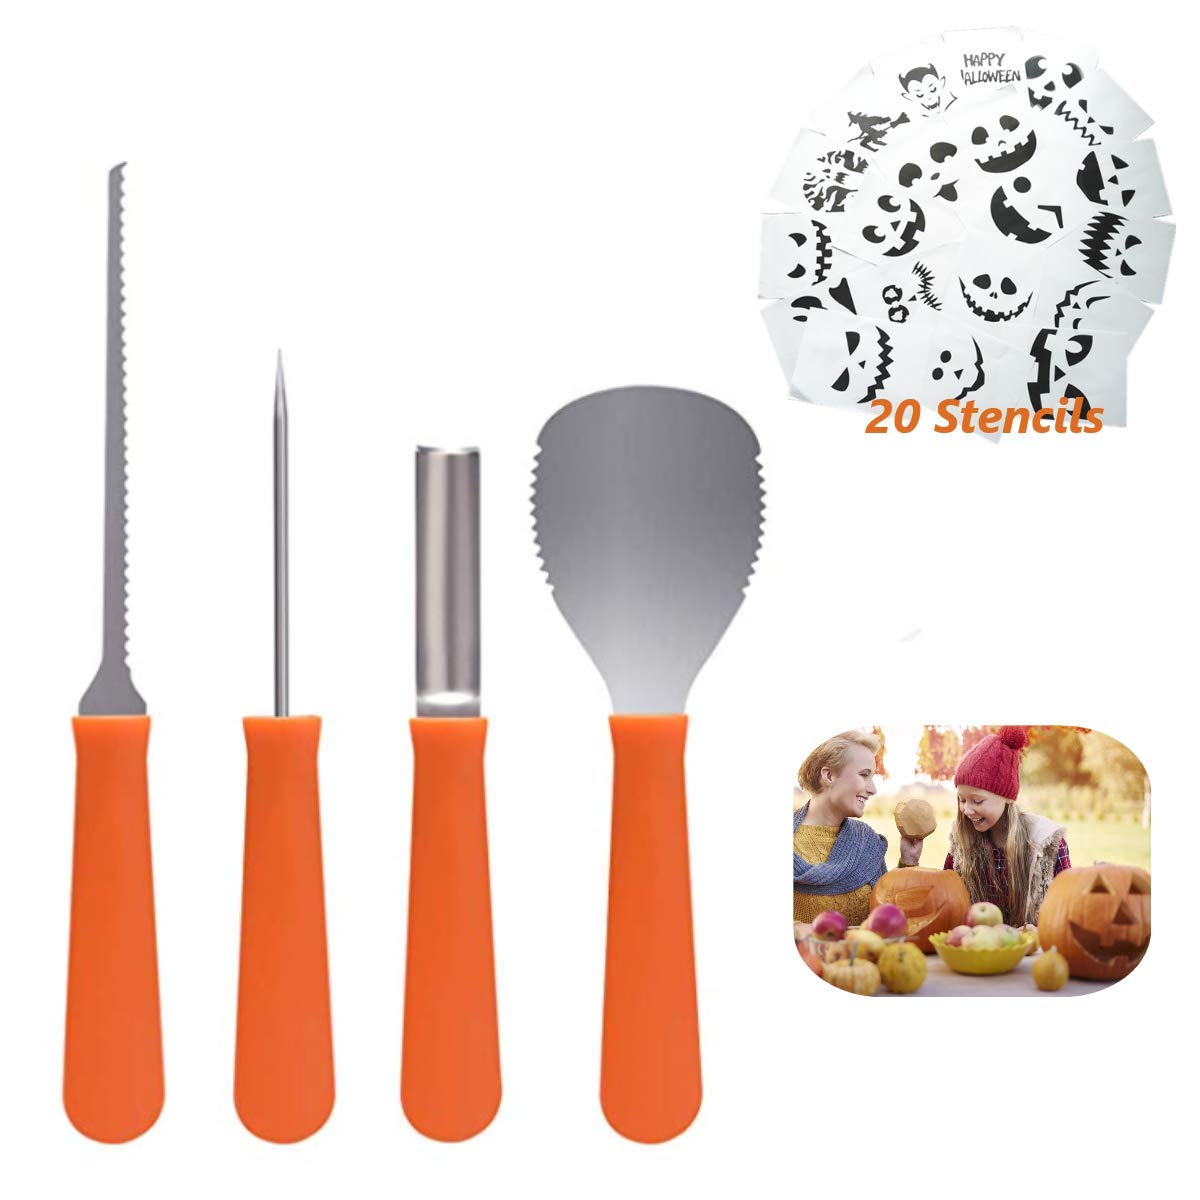 Professional Pumpkin Carving Tools Kit【Set of 4】Premium Heavy Duty Stainless Steel Knives for Easily Sculpt Halloween Jack-O-Lanterns with【Many Pumpkin Carved Stencils/Patterns/Templates】 by AUXIN (Image #1)